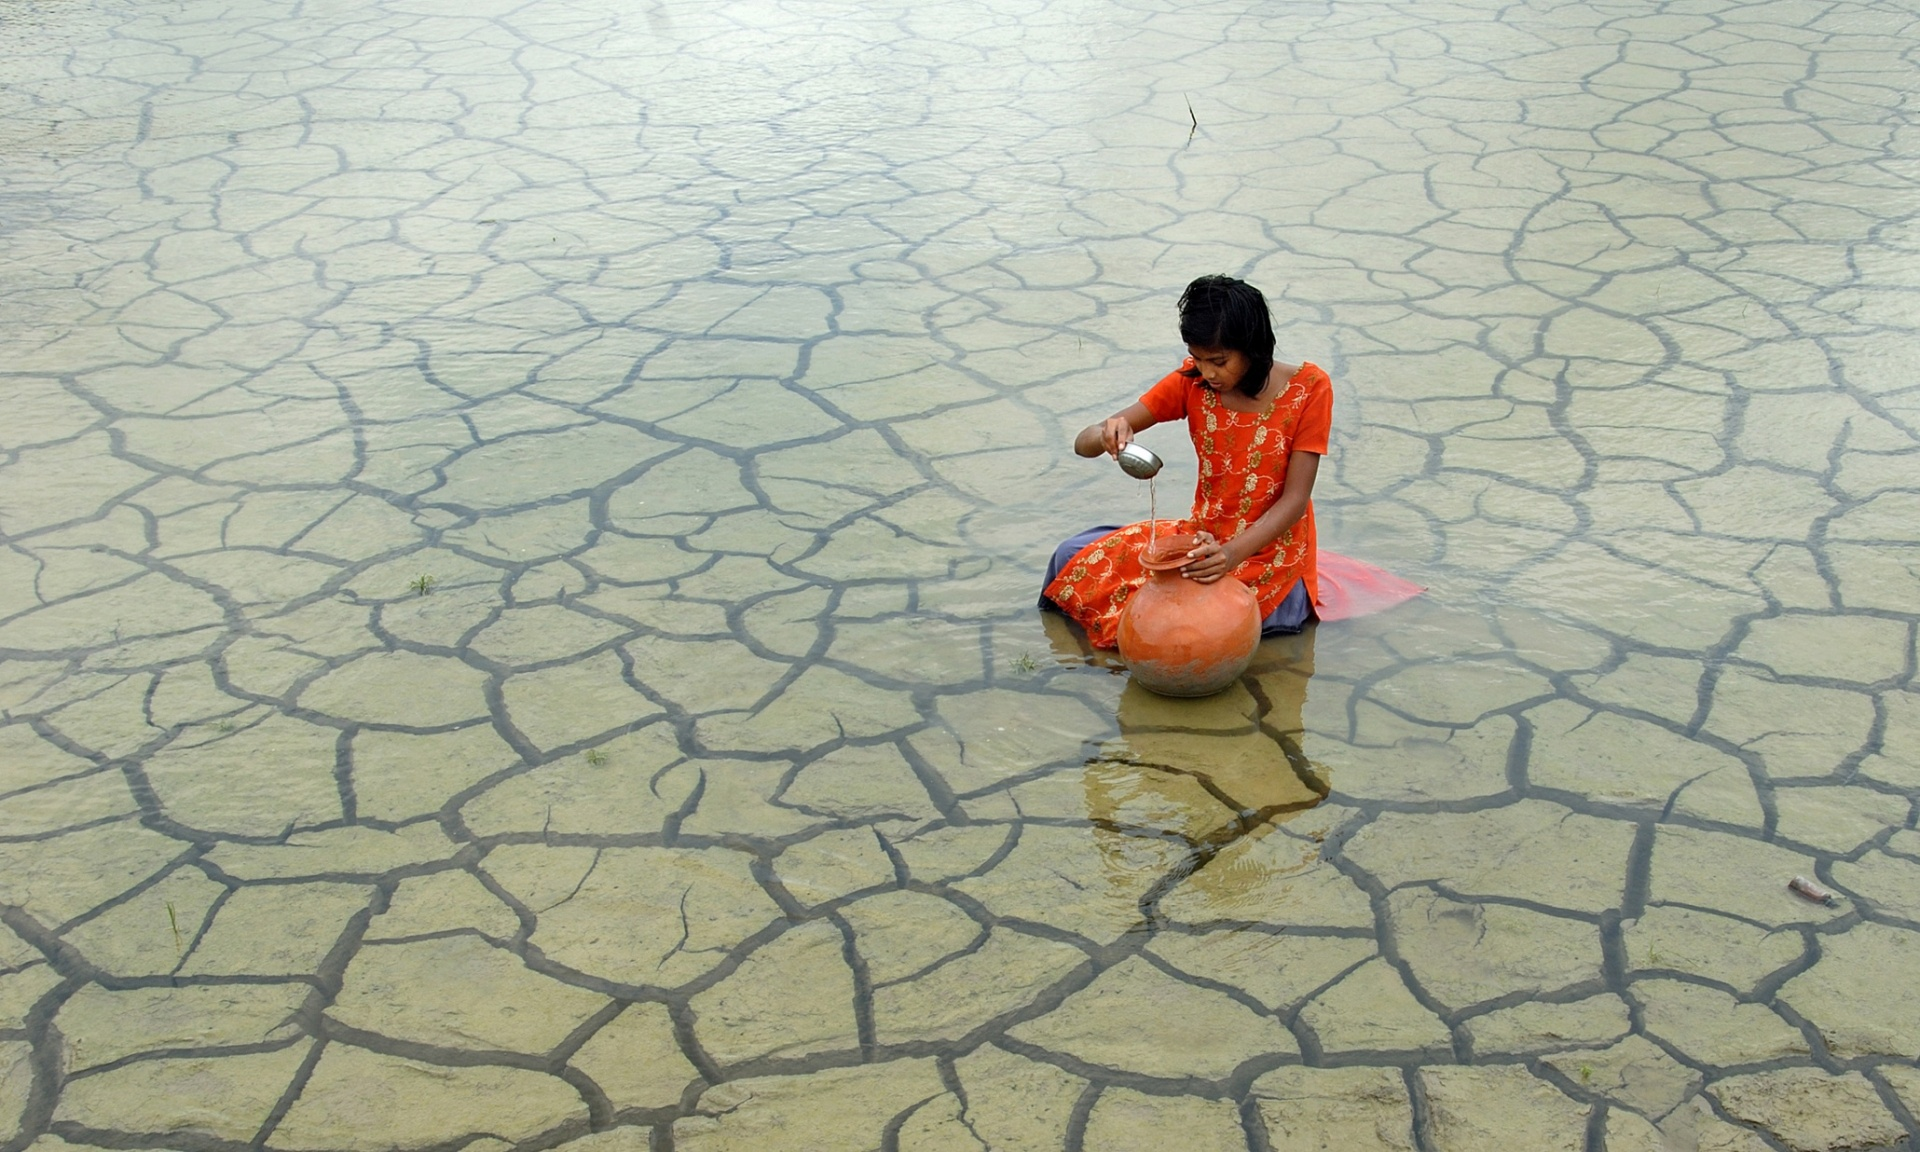 Rainwater collection, 2012, by Prasanta Biswas (India